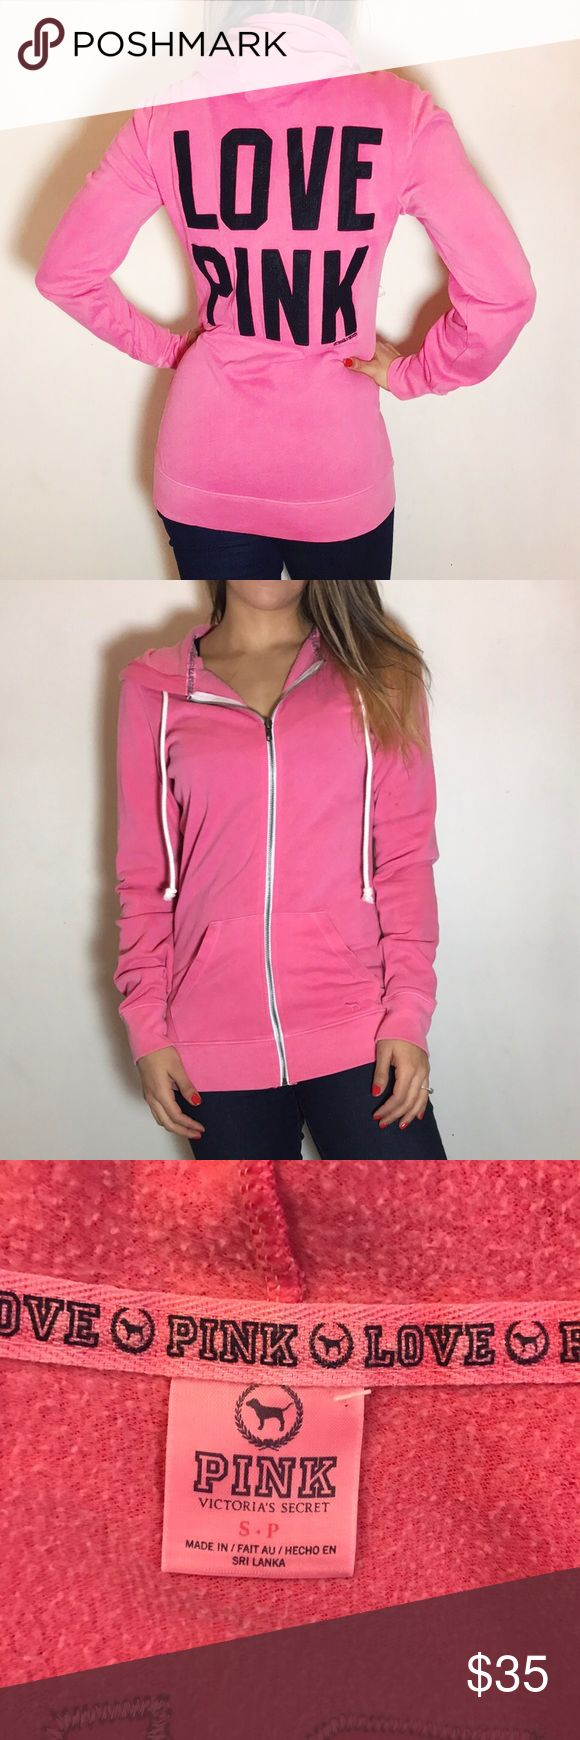 VS PINK Zip-Up Hoodie VS PINK Zip-Up Hoodie. -Size S. -Super soft fleece inside. -Bright pink. -In excellent condition.  NO Trades. Please make all offers through offer button. PINK Victoria's Secret Tops Sweatshirts & Hoodies